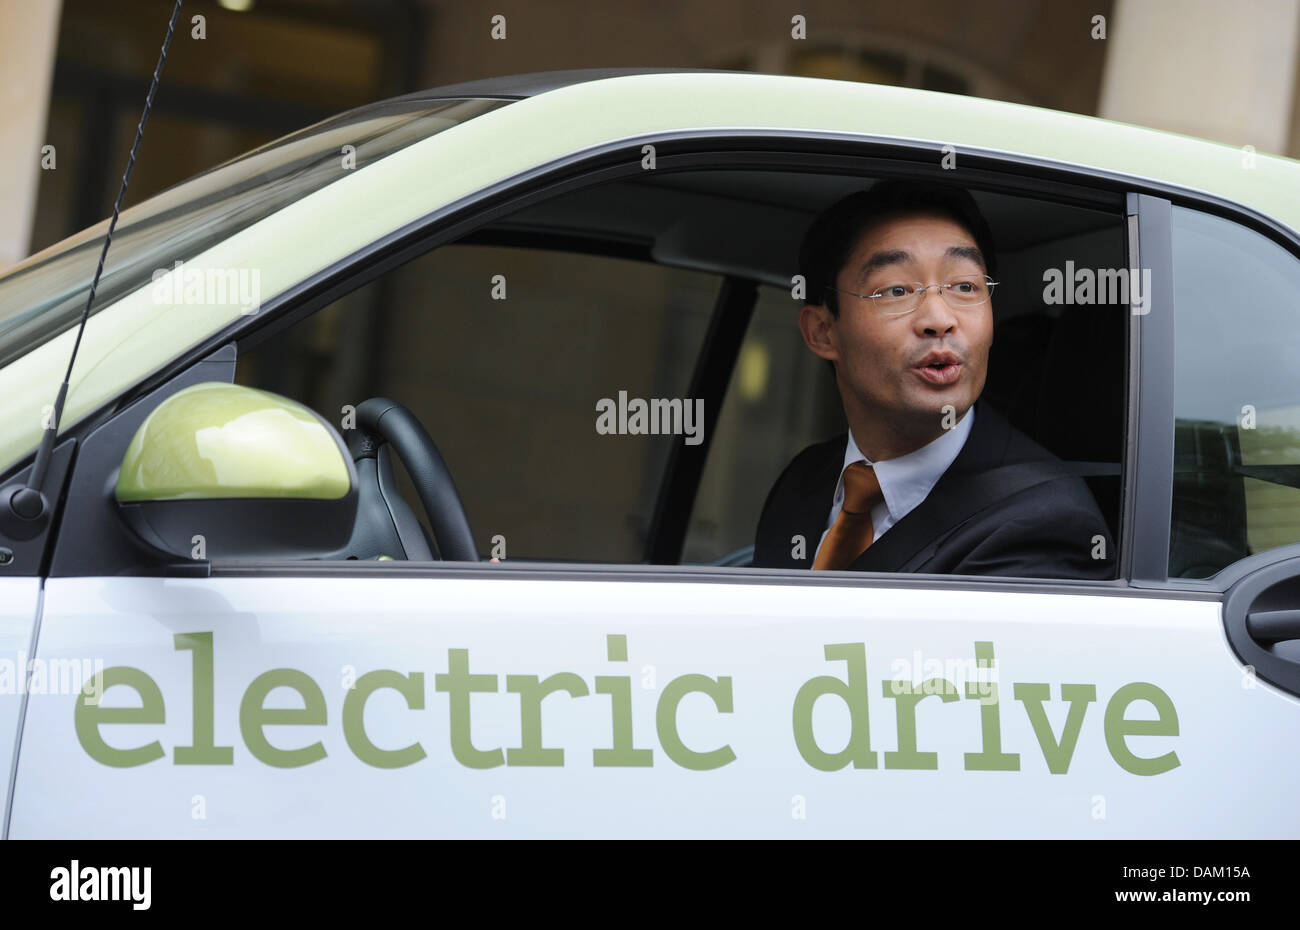 During the handover new economic minister Philipp Roesler sits inside an electric car at the Economic Ministry in - Stock Image